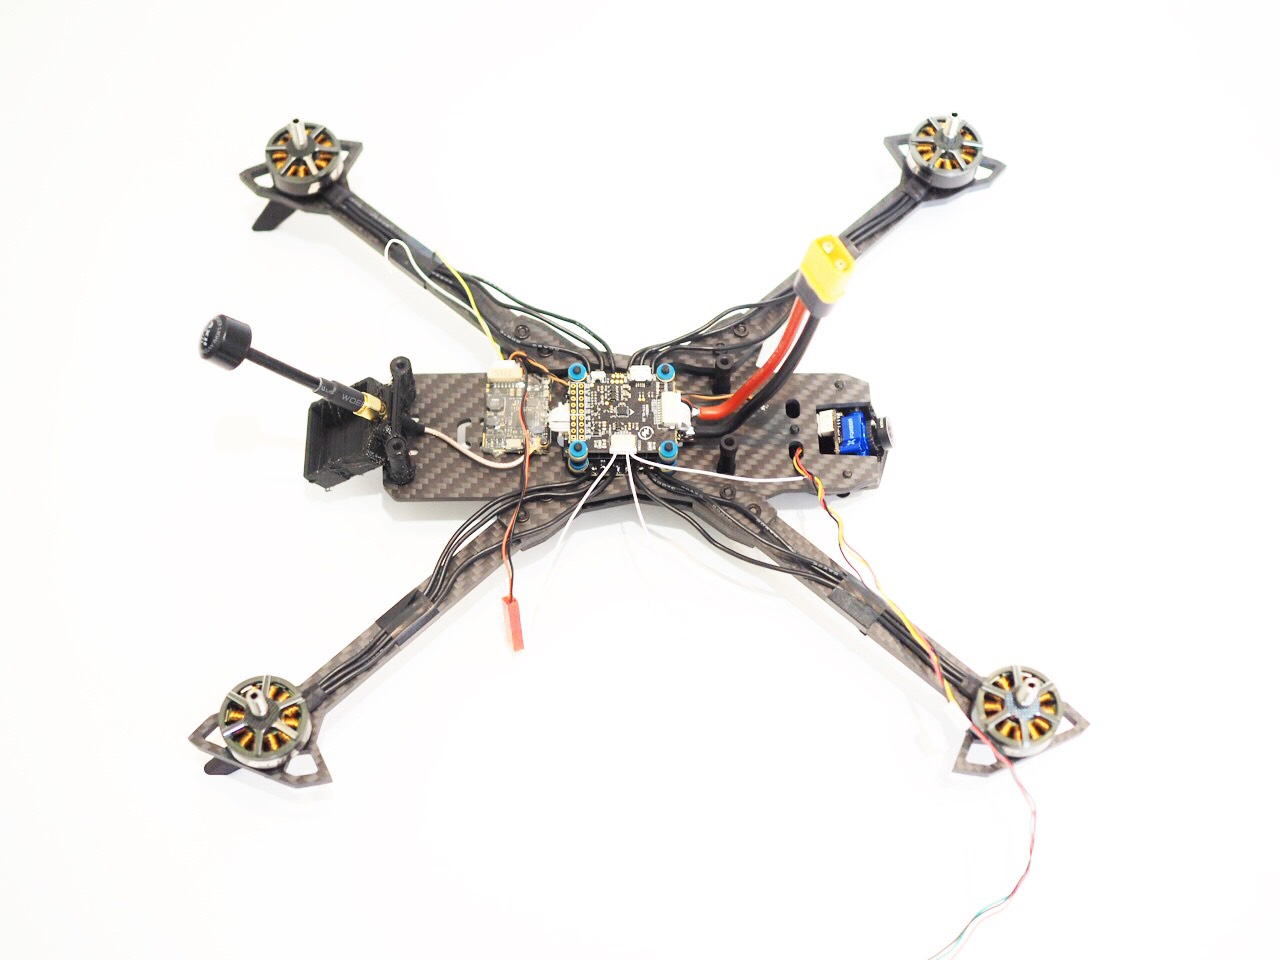 Raggio Lungo Falcon Multirotors Carbon Fiber Frame Arm Brace TPU 3D Printed GoPro Mount Wedge TMotor F60 Pro II TBS Crossfire Nano RX Unify Pro HV 800mW Lumenier AXII Hellgate Buzzer LED Hobbywing Xrotor Micro 45A BLHeli_32 G2 FC F4 Ublox HolyBro GPS Pigtail Wiring Harness